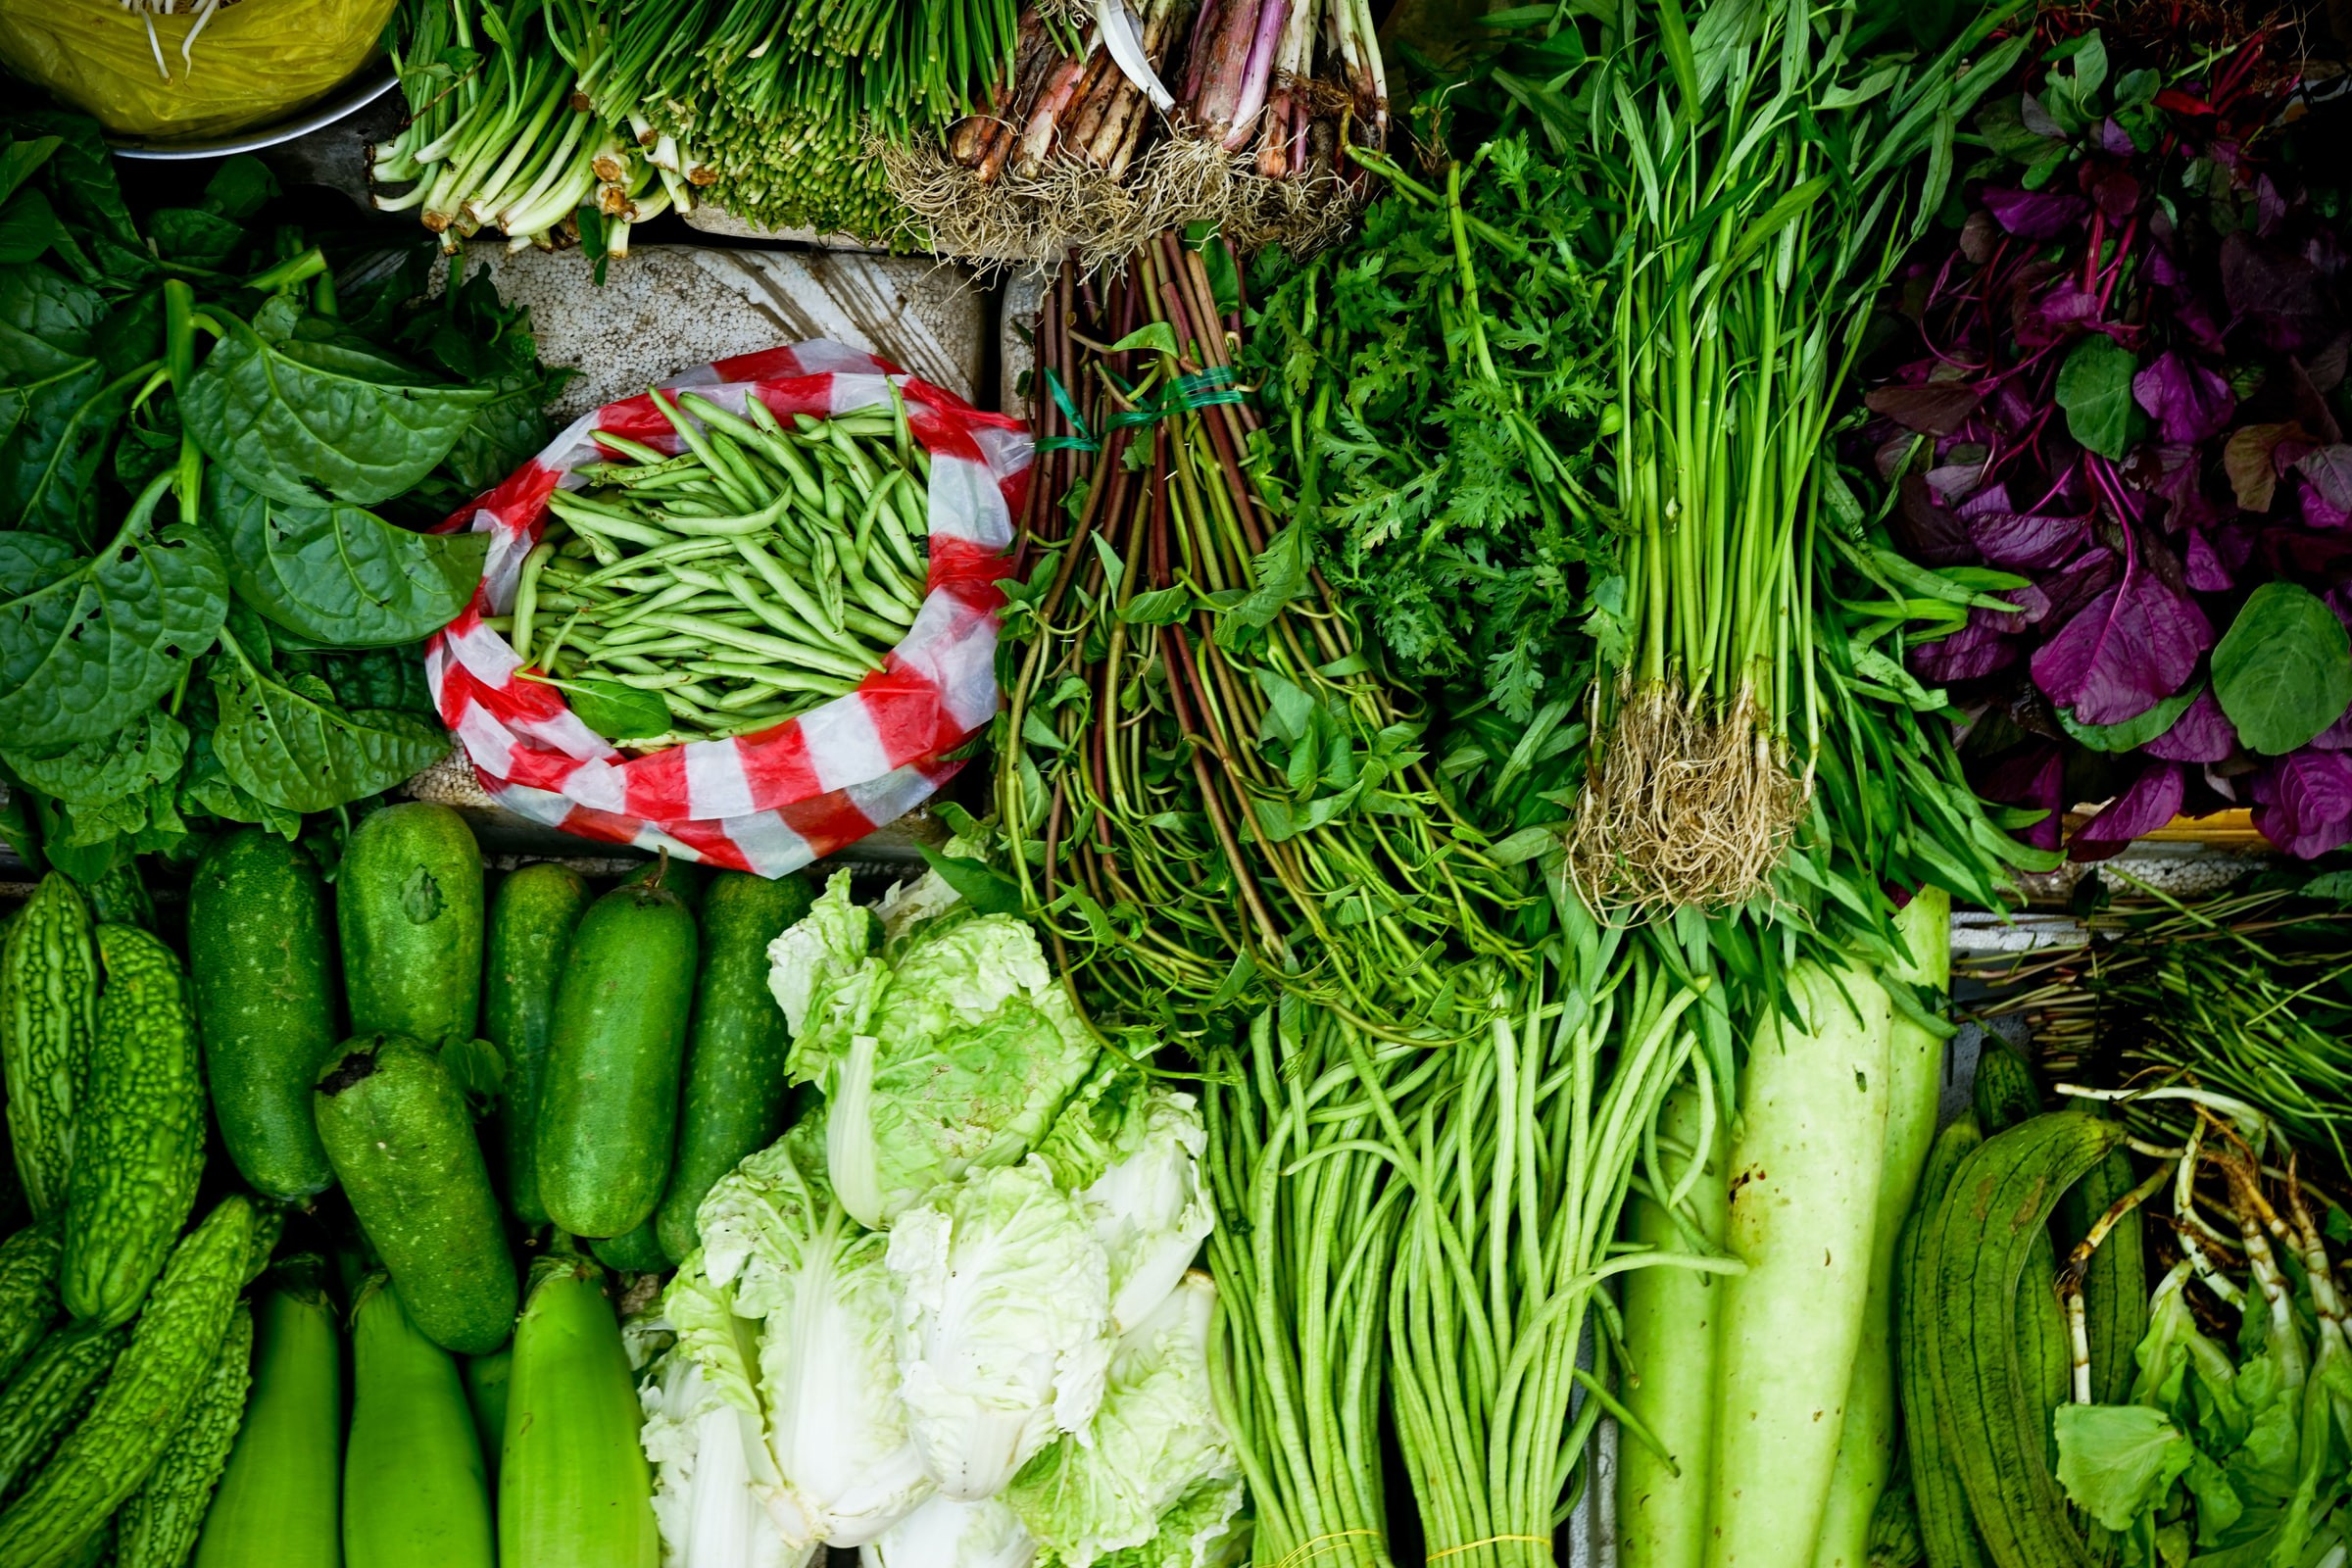 display of green leafy veggies